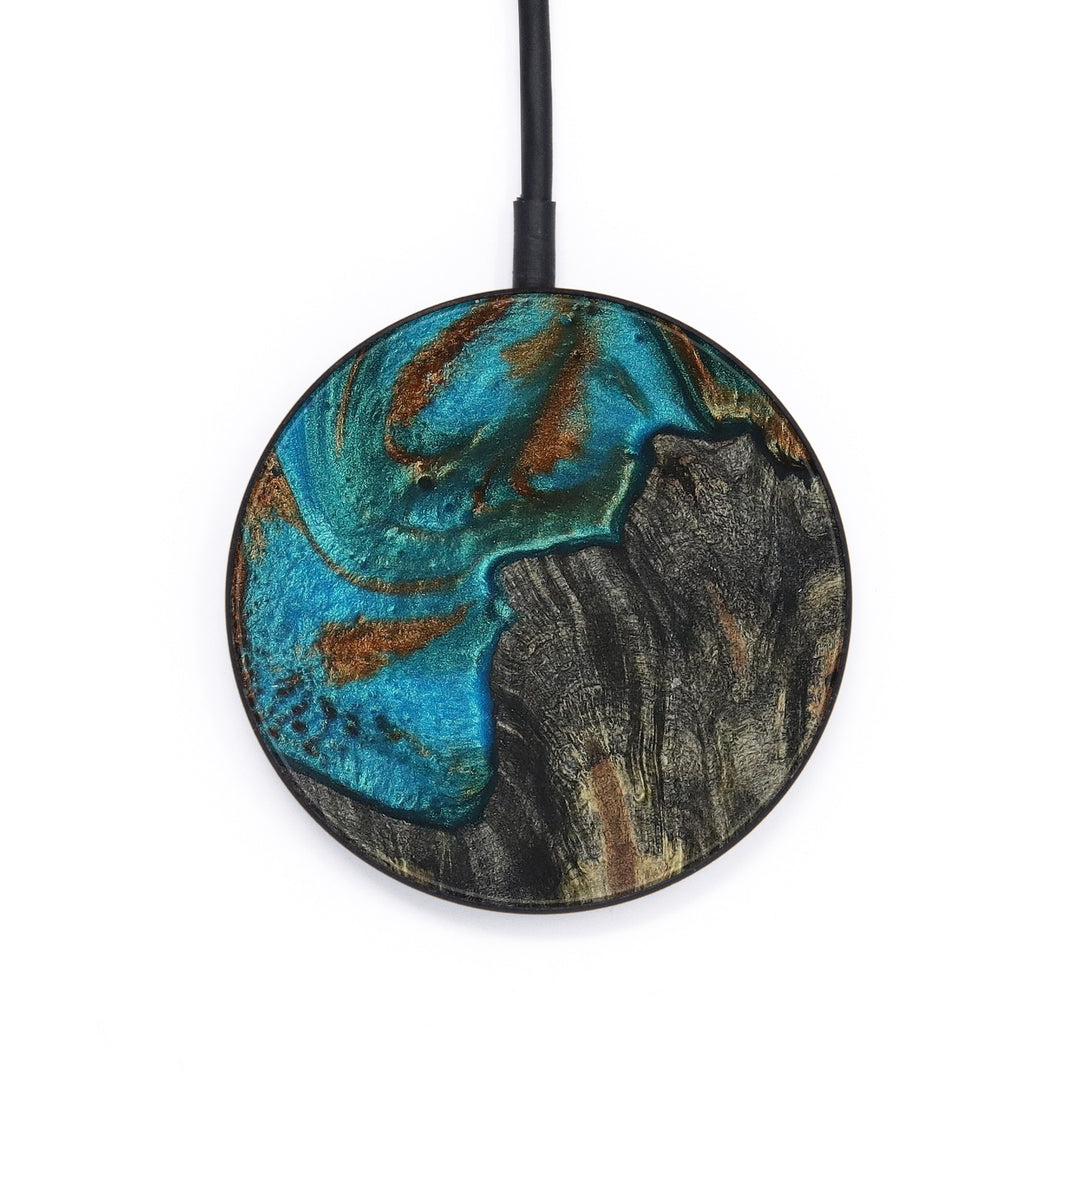 Circle Wood+Resin Wireless Charger - Lyndsay (Teal & Gold, 392878)